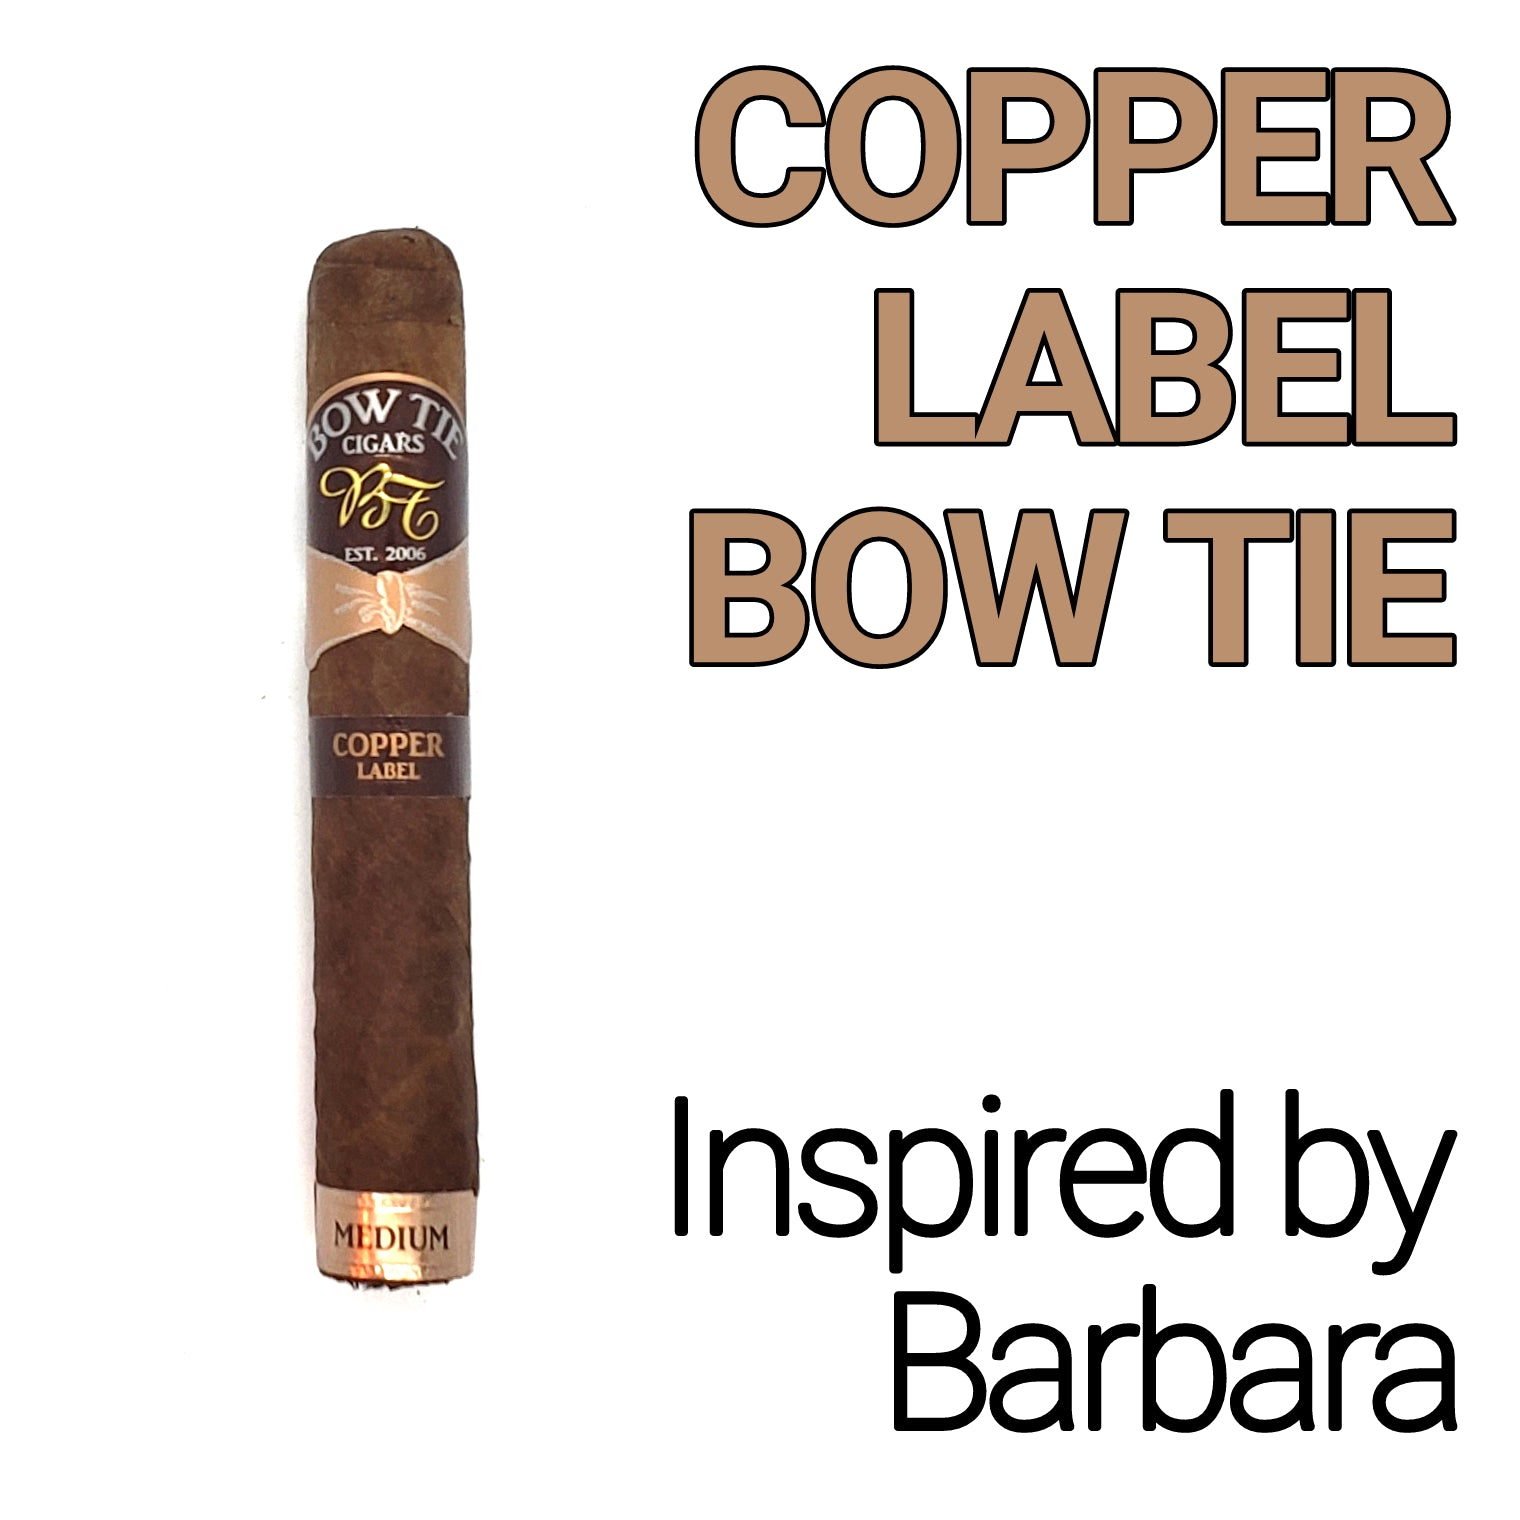 COPPER LABEL BOW TIE - 5 PACK